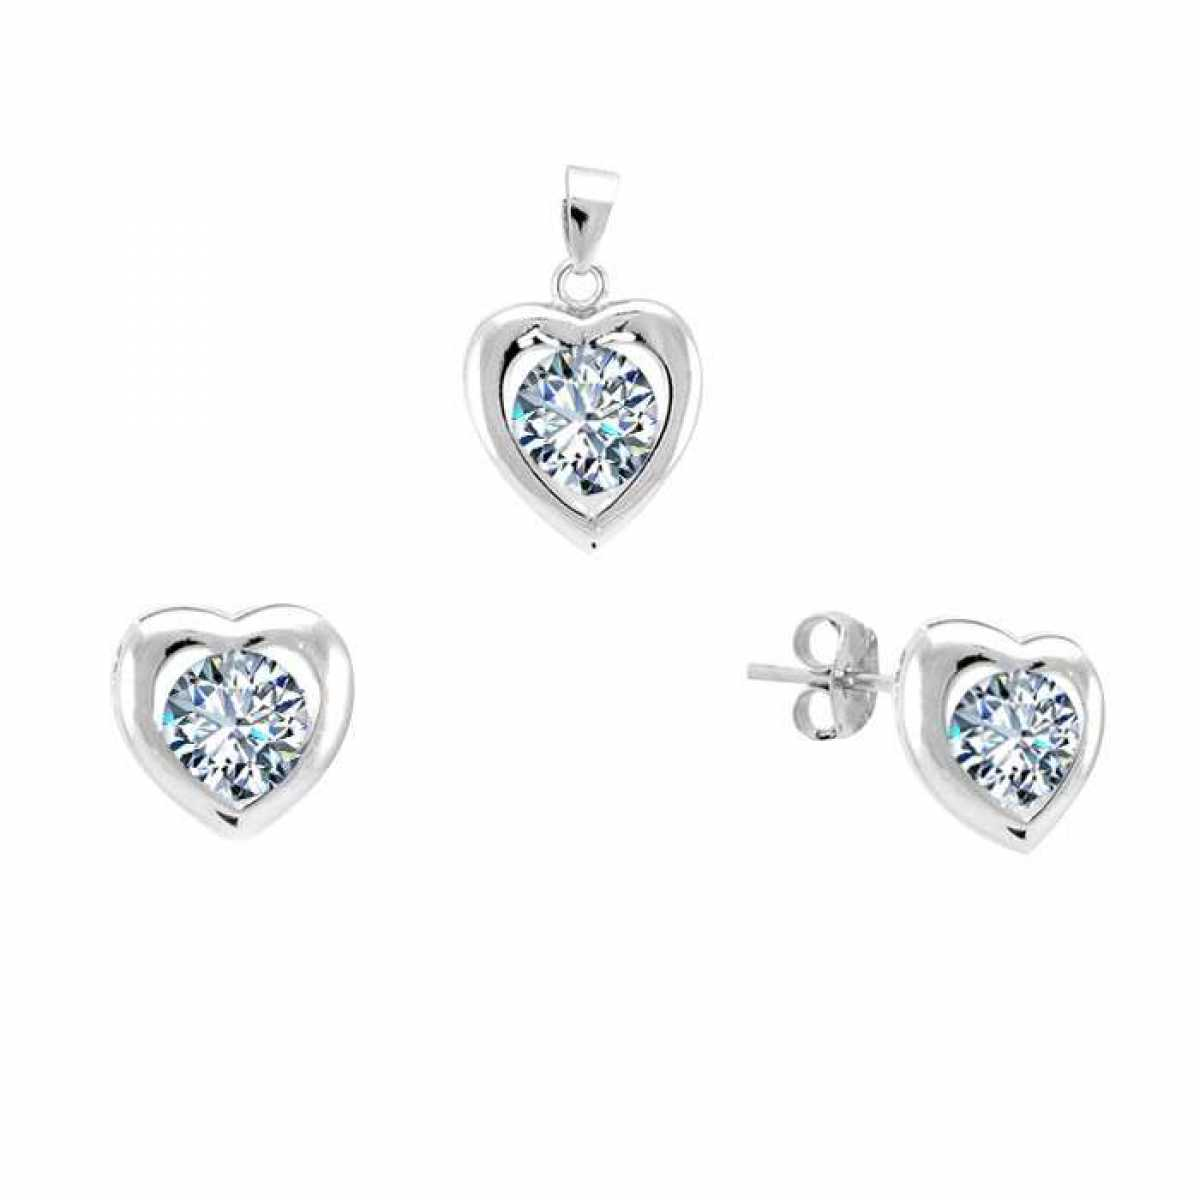 Sweet flower New Silver Pendant Set